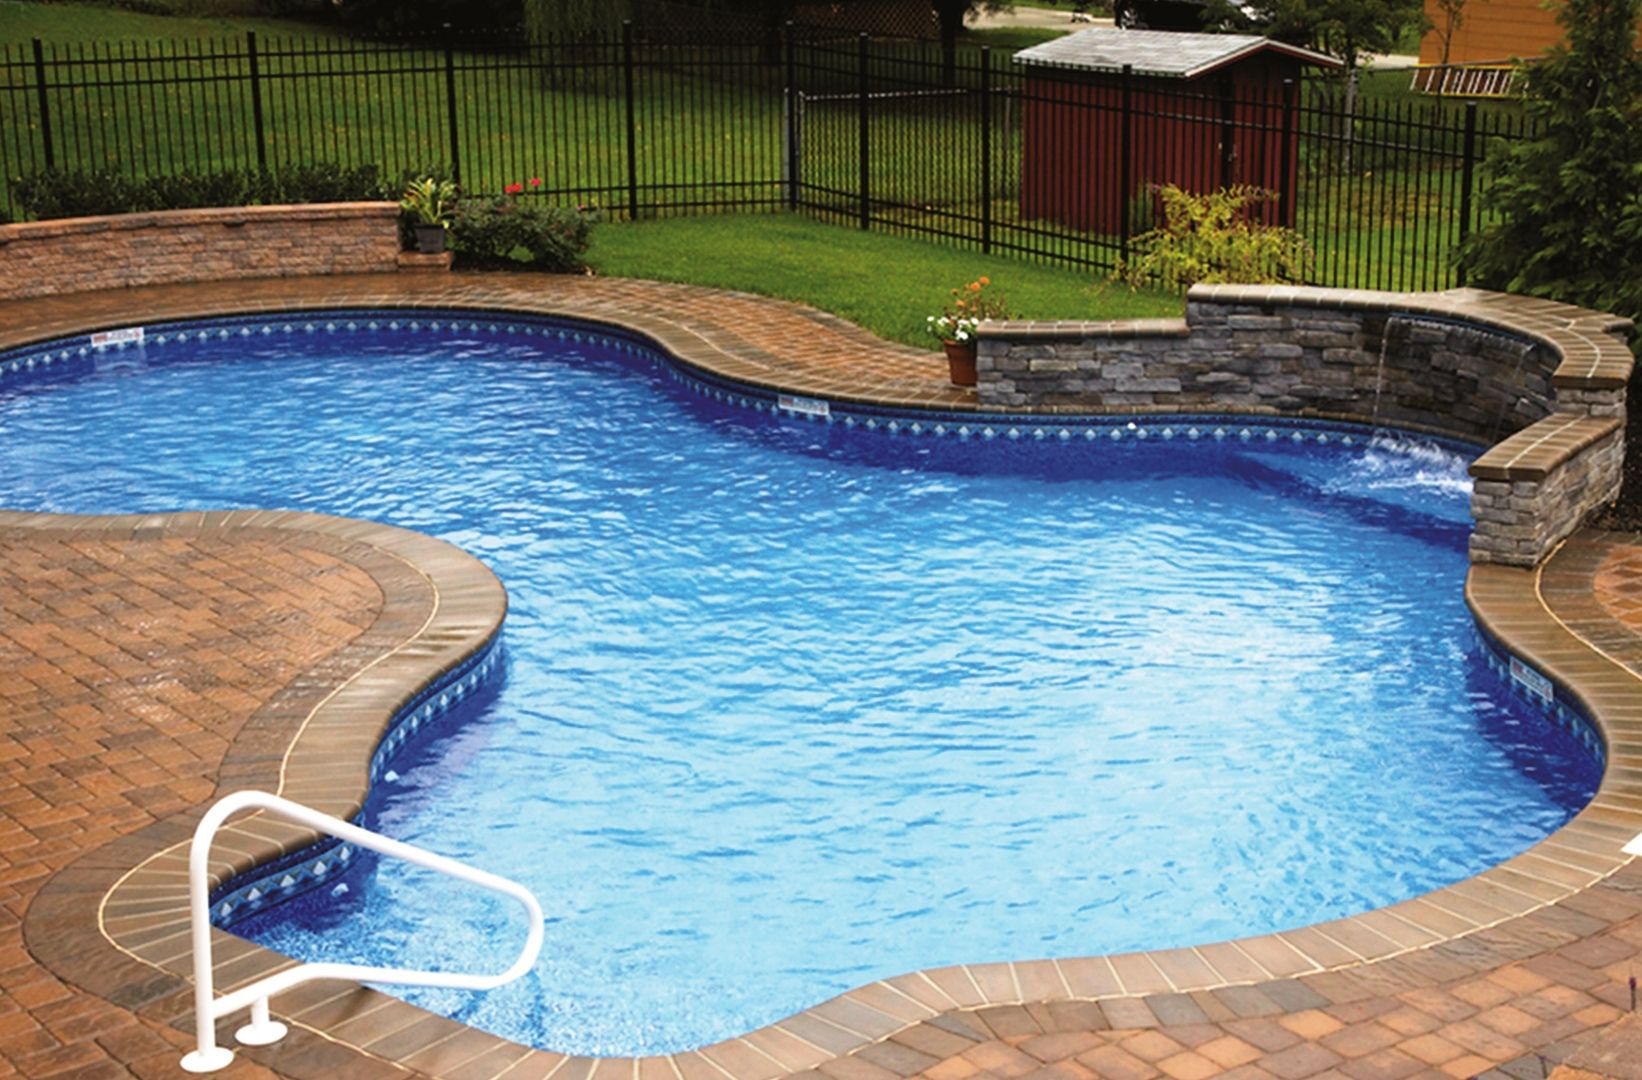 Back yard swimming pool ideas swimming pool design for Pool designs images